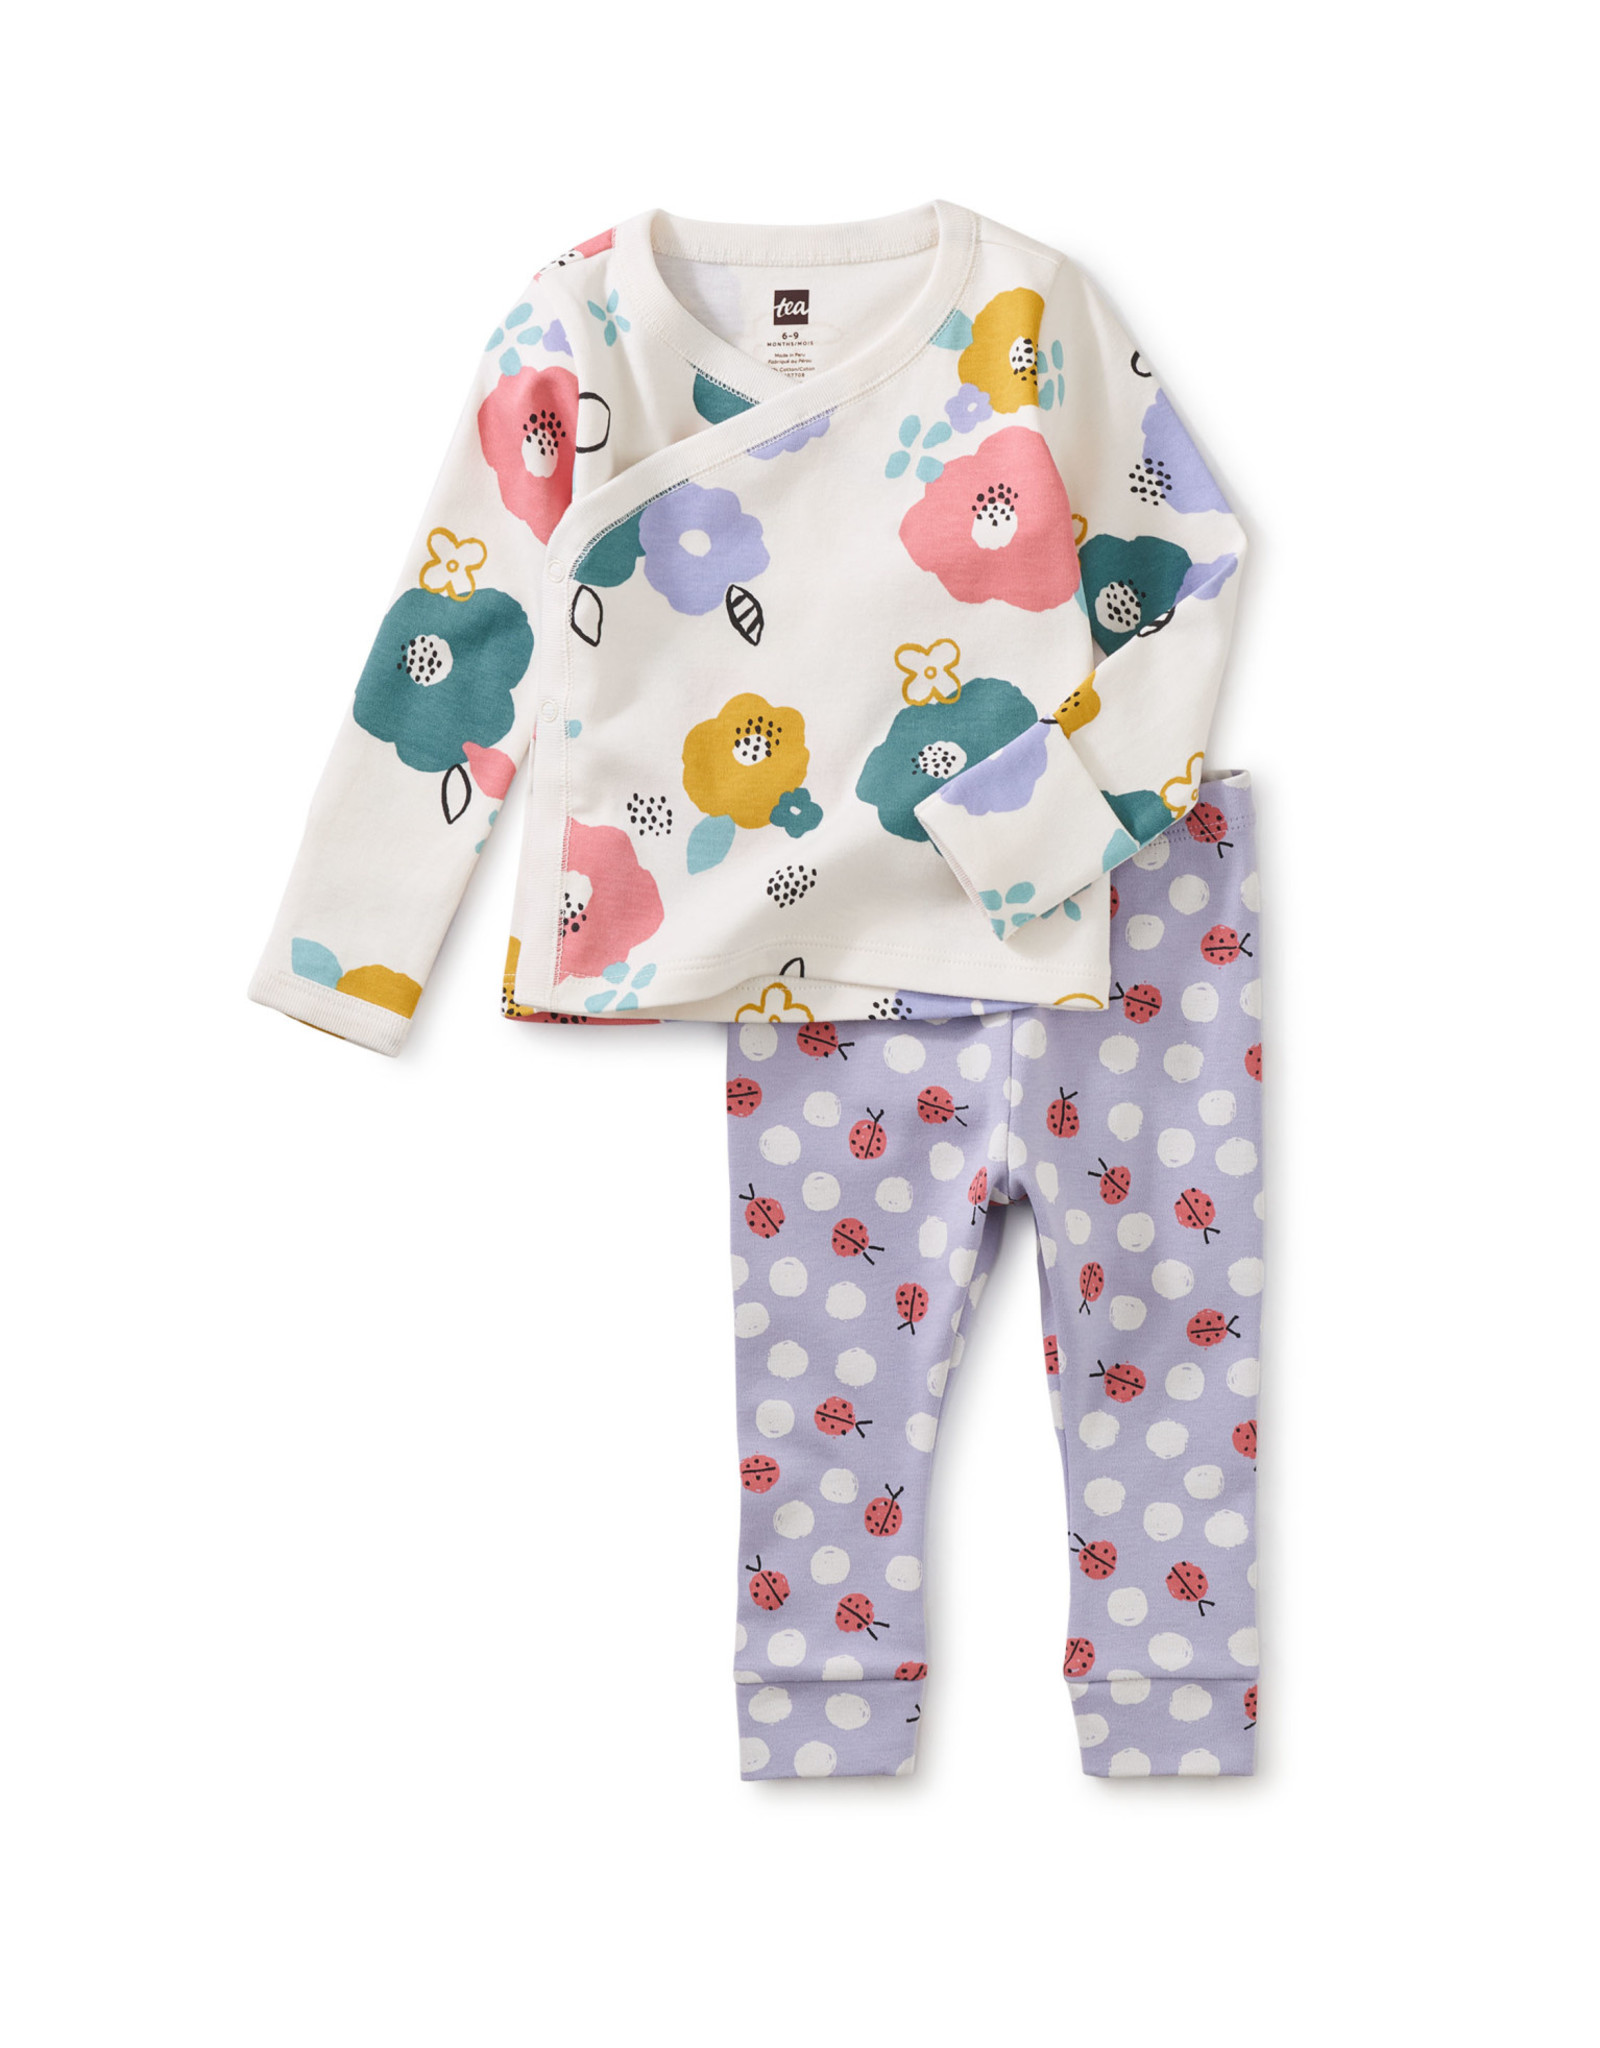 Tea Wrap Top Baby Outfit, Floral